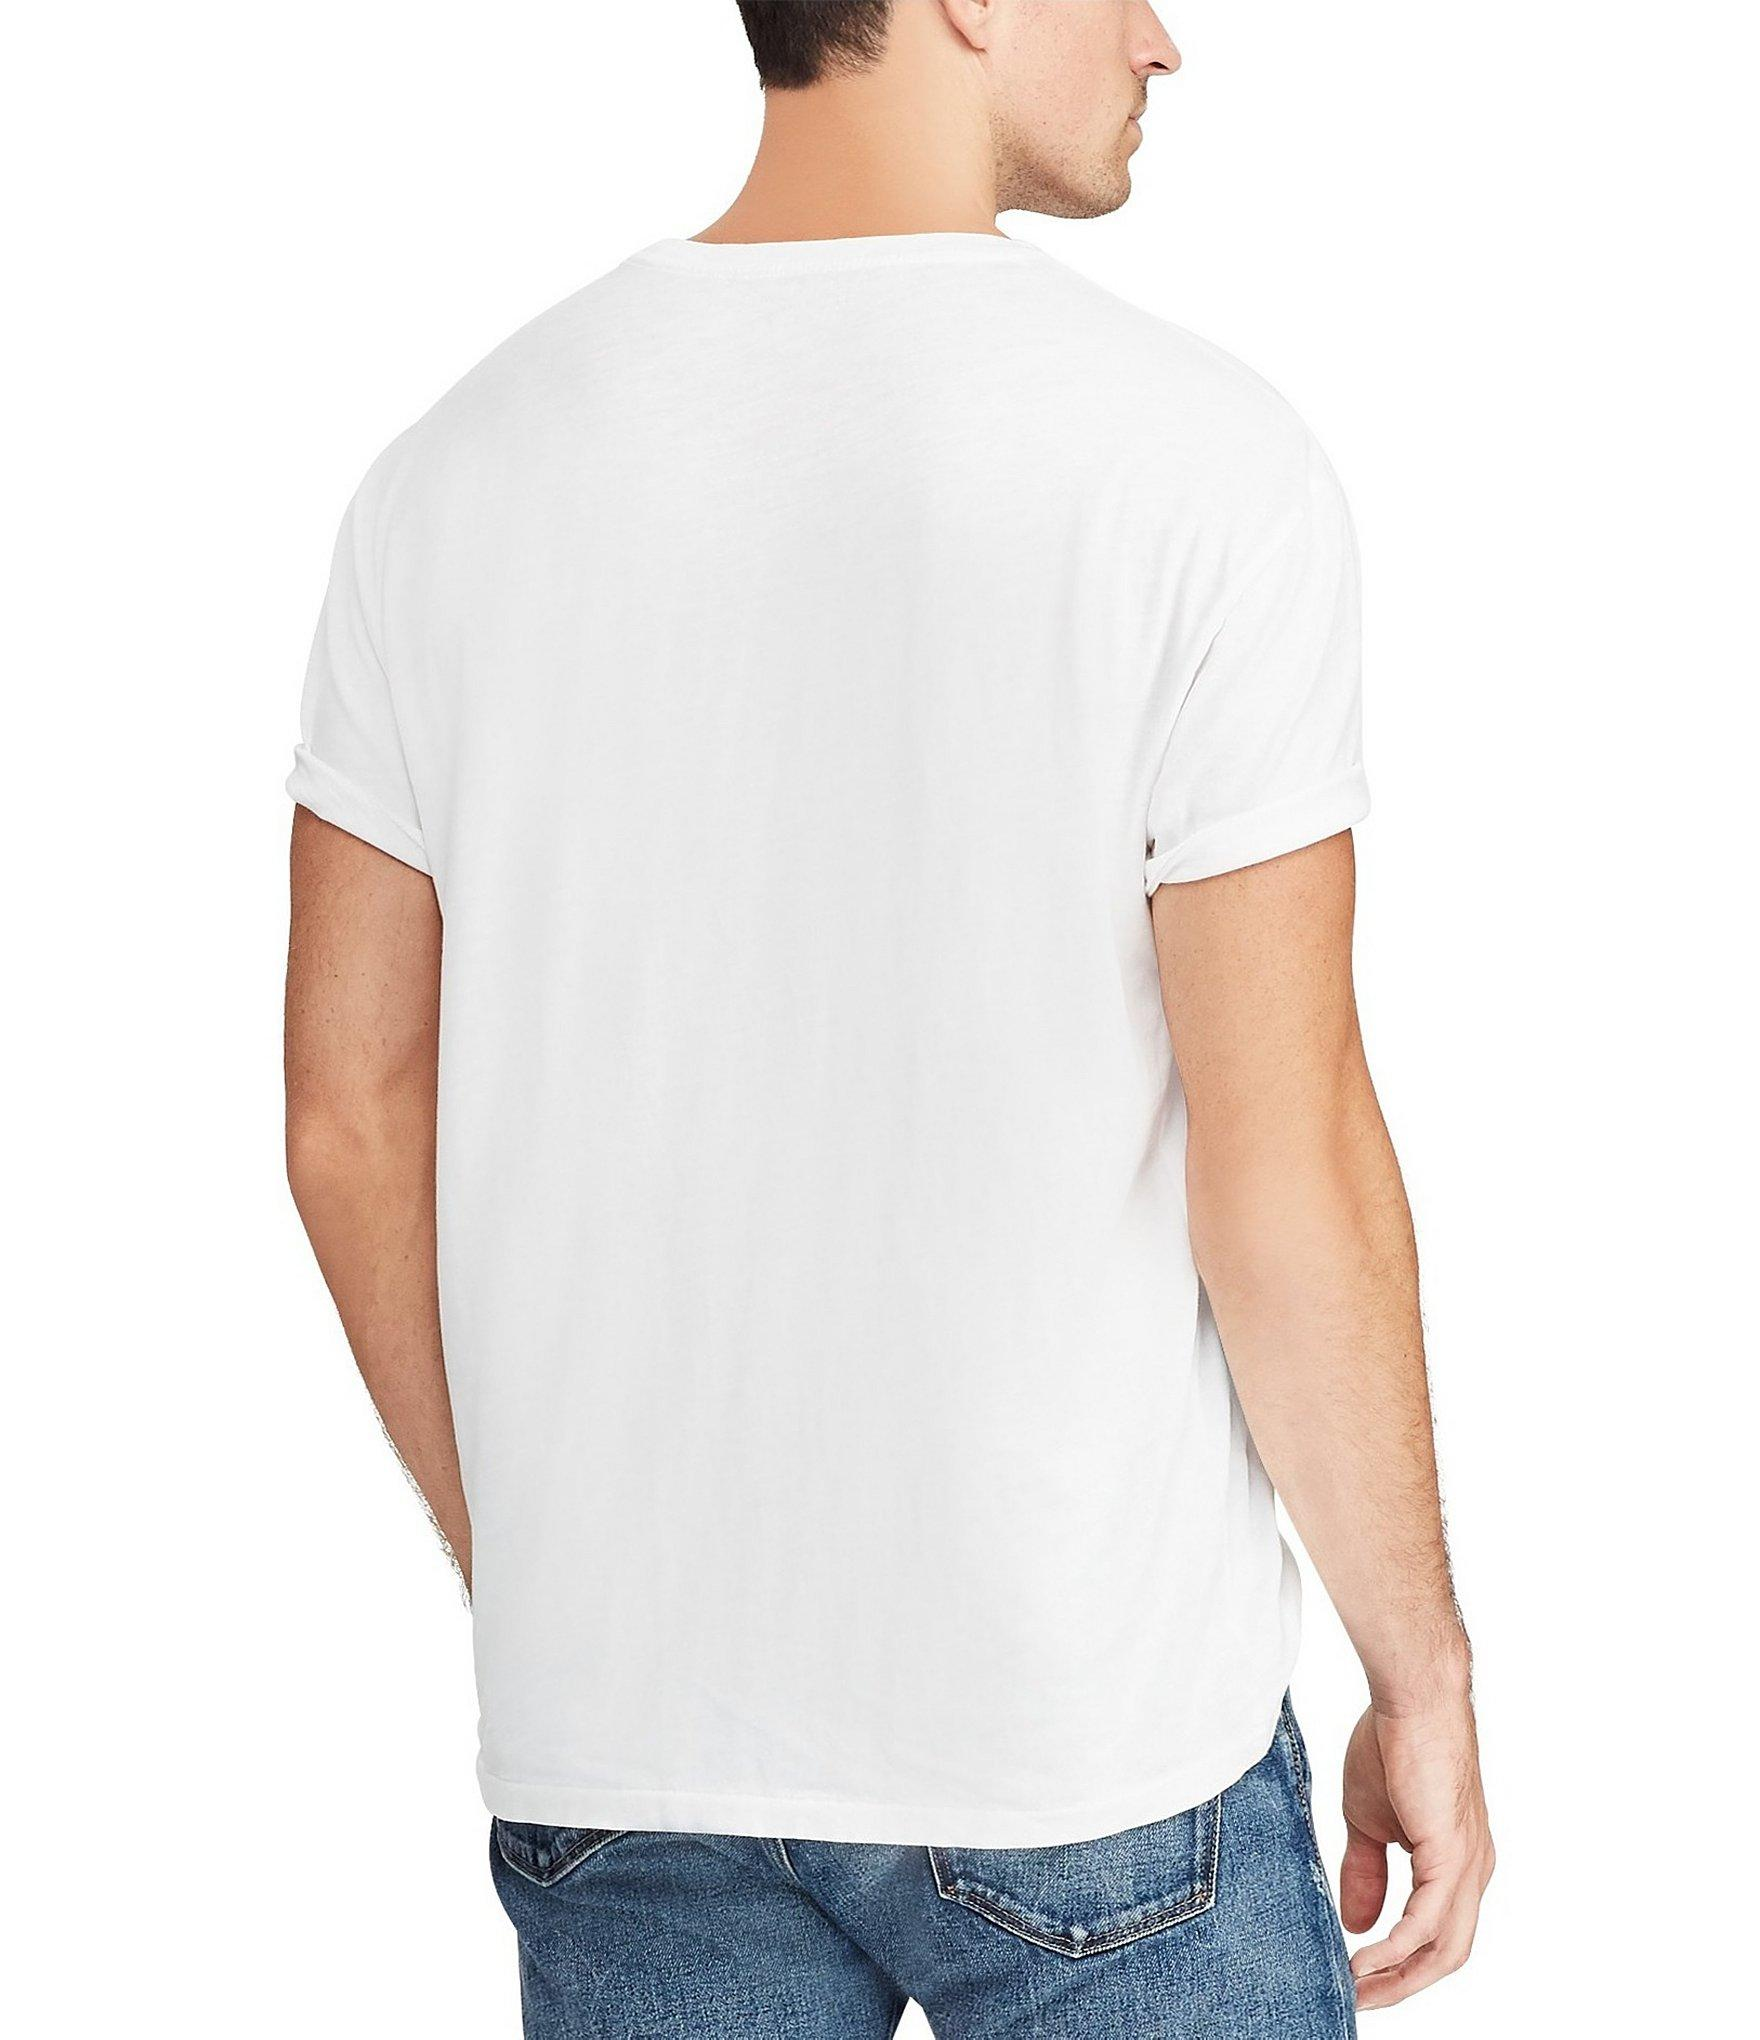 bff0595e9 Polo Ralph Lauren - White L s Sportsmen Respect Wildlife Tee for Men - Lyst.  View fullscreen